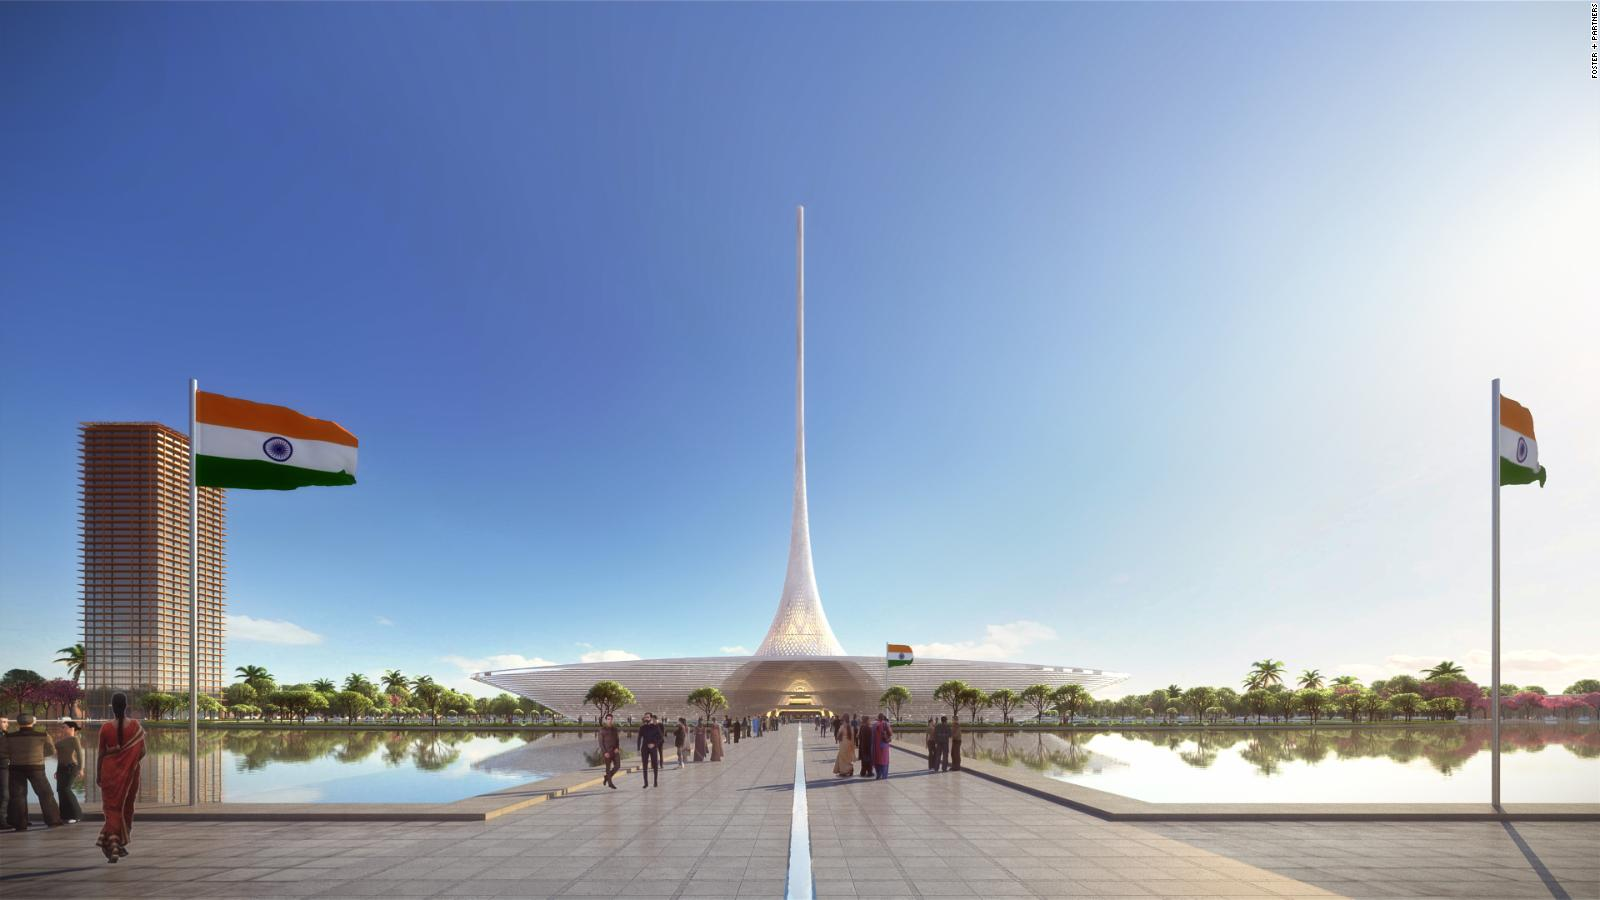 Amaravati: How India is building a sustainable city - CNN Style